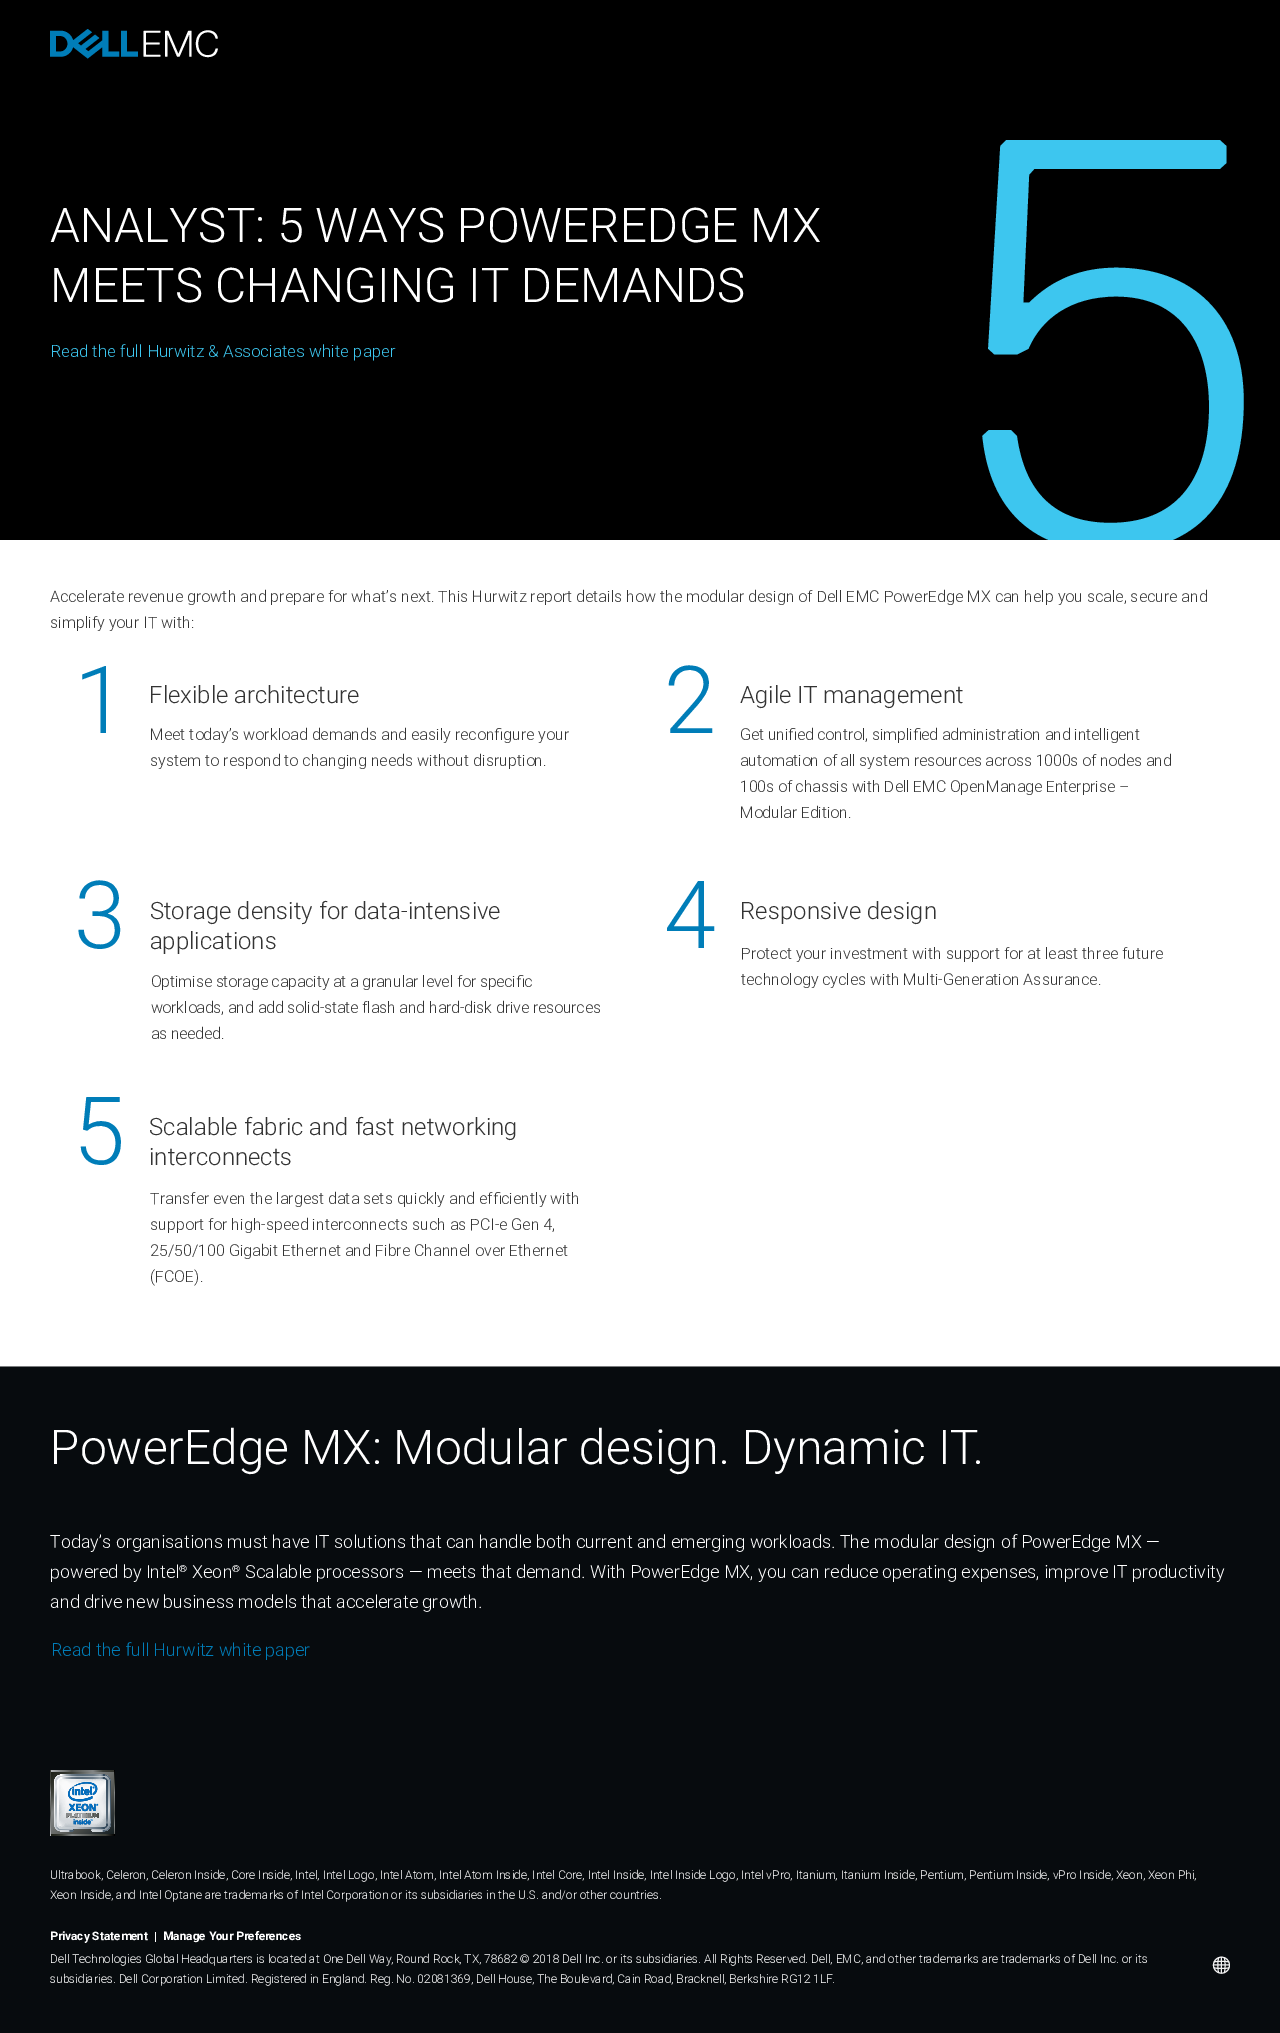 Thumb original dellemc 5 ways poweredge mx meets changing it demands 18354